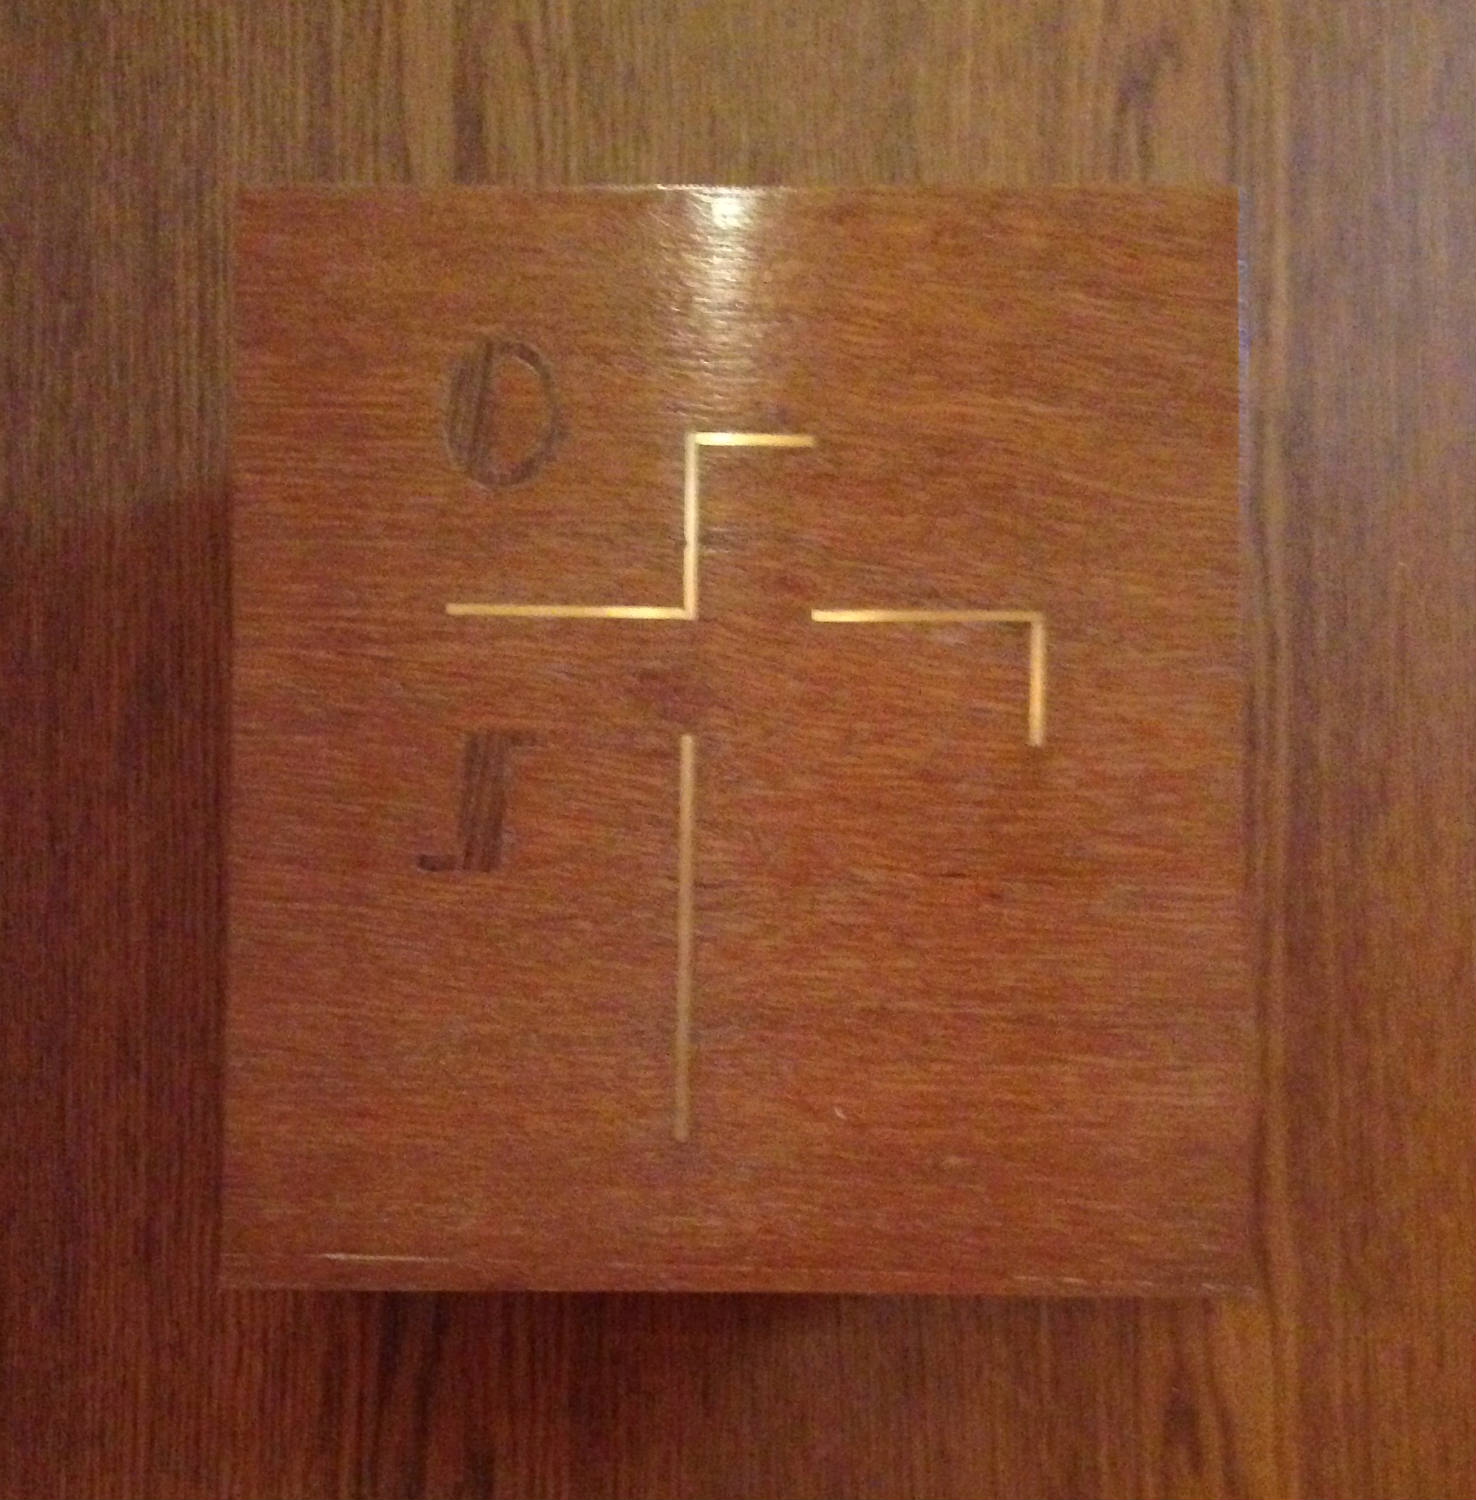 Religious Symbols in Woodwork at former St. Michael's Mission in Conesus, New York